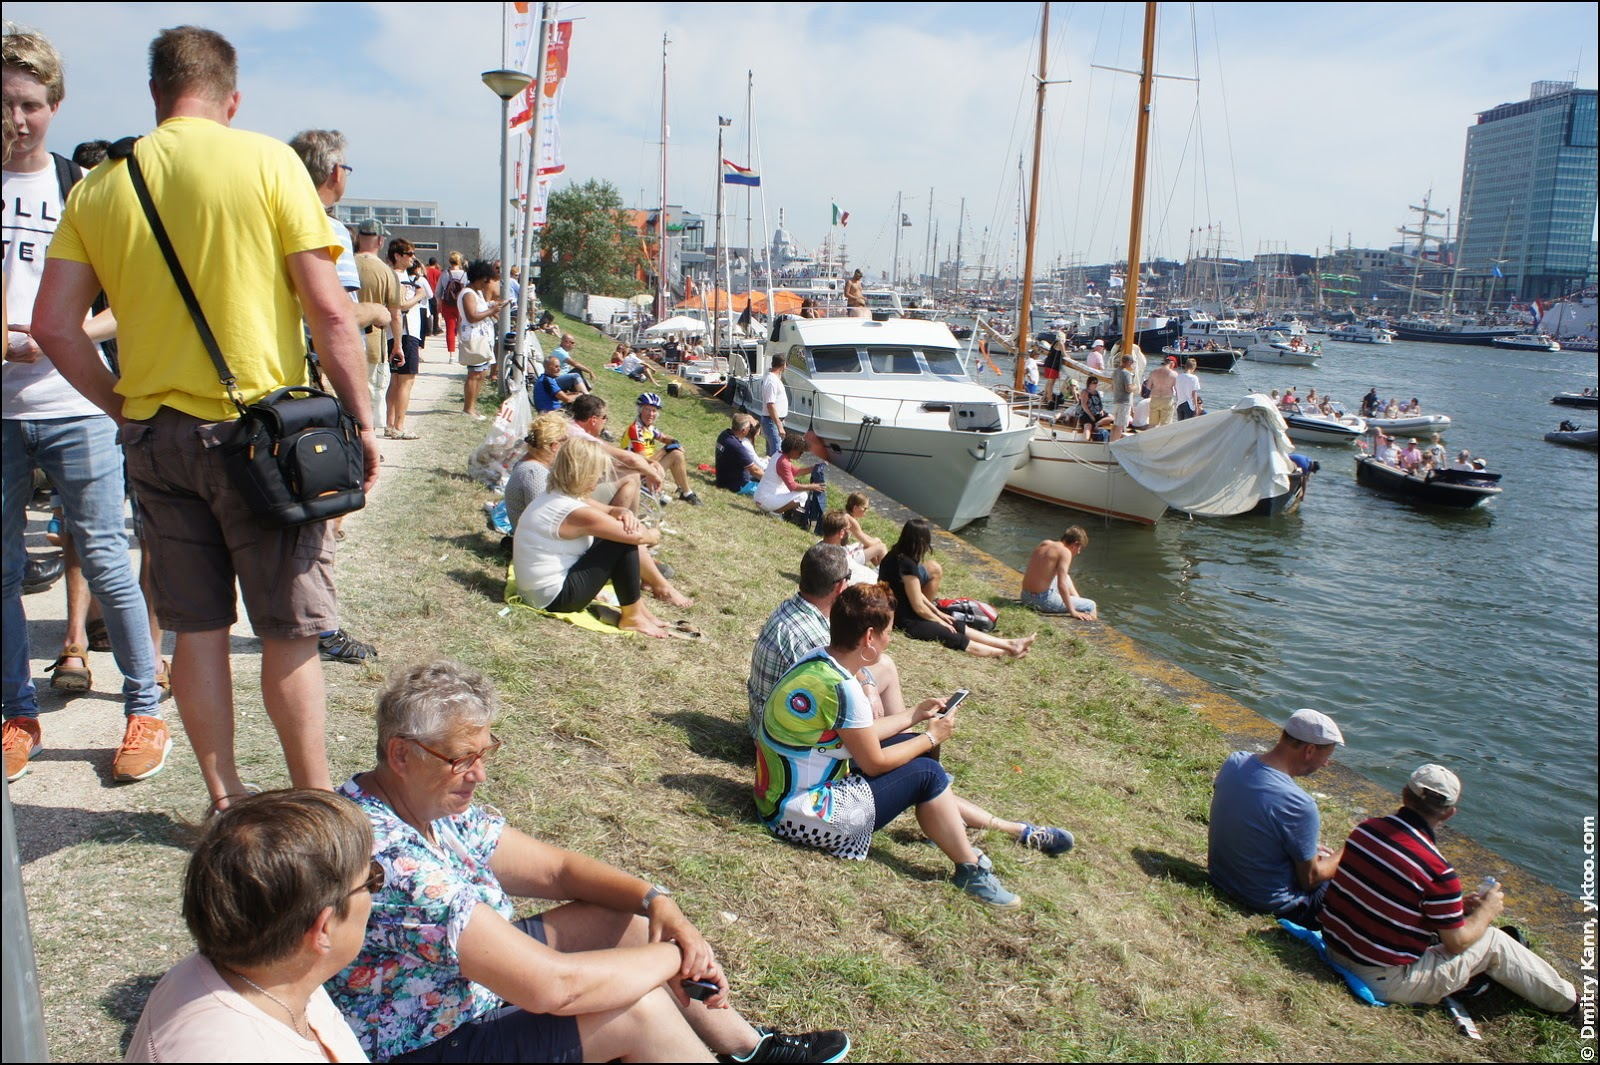 The audience of SAIL Amsterdam.